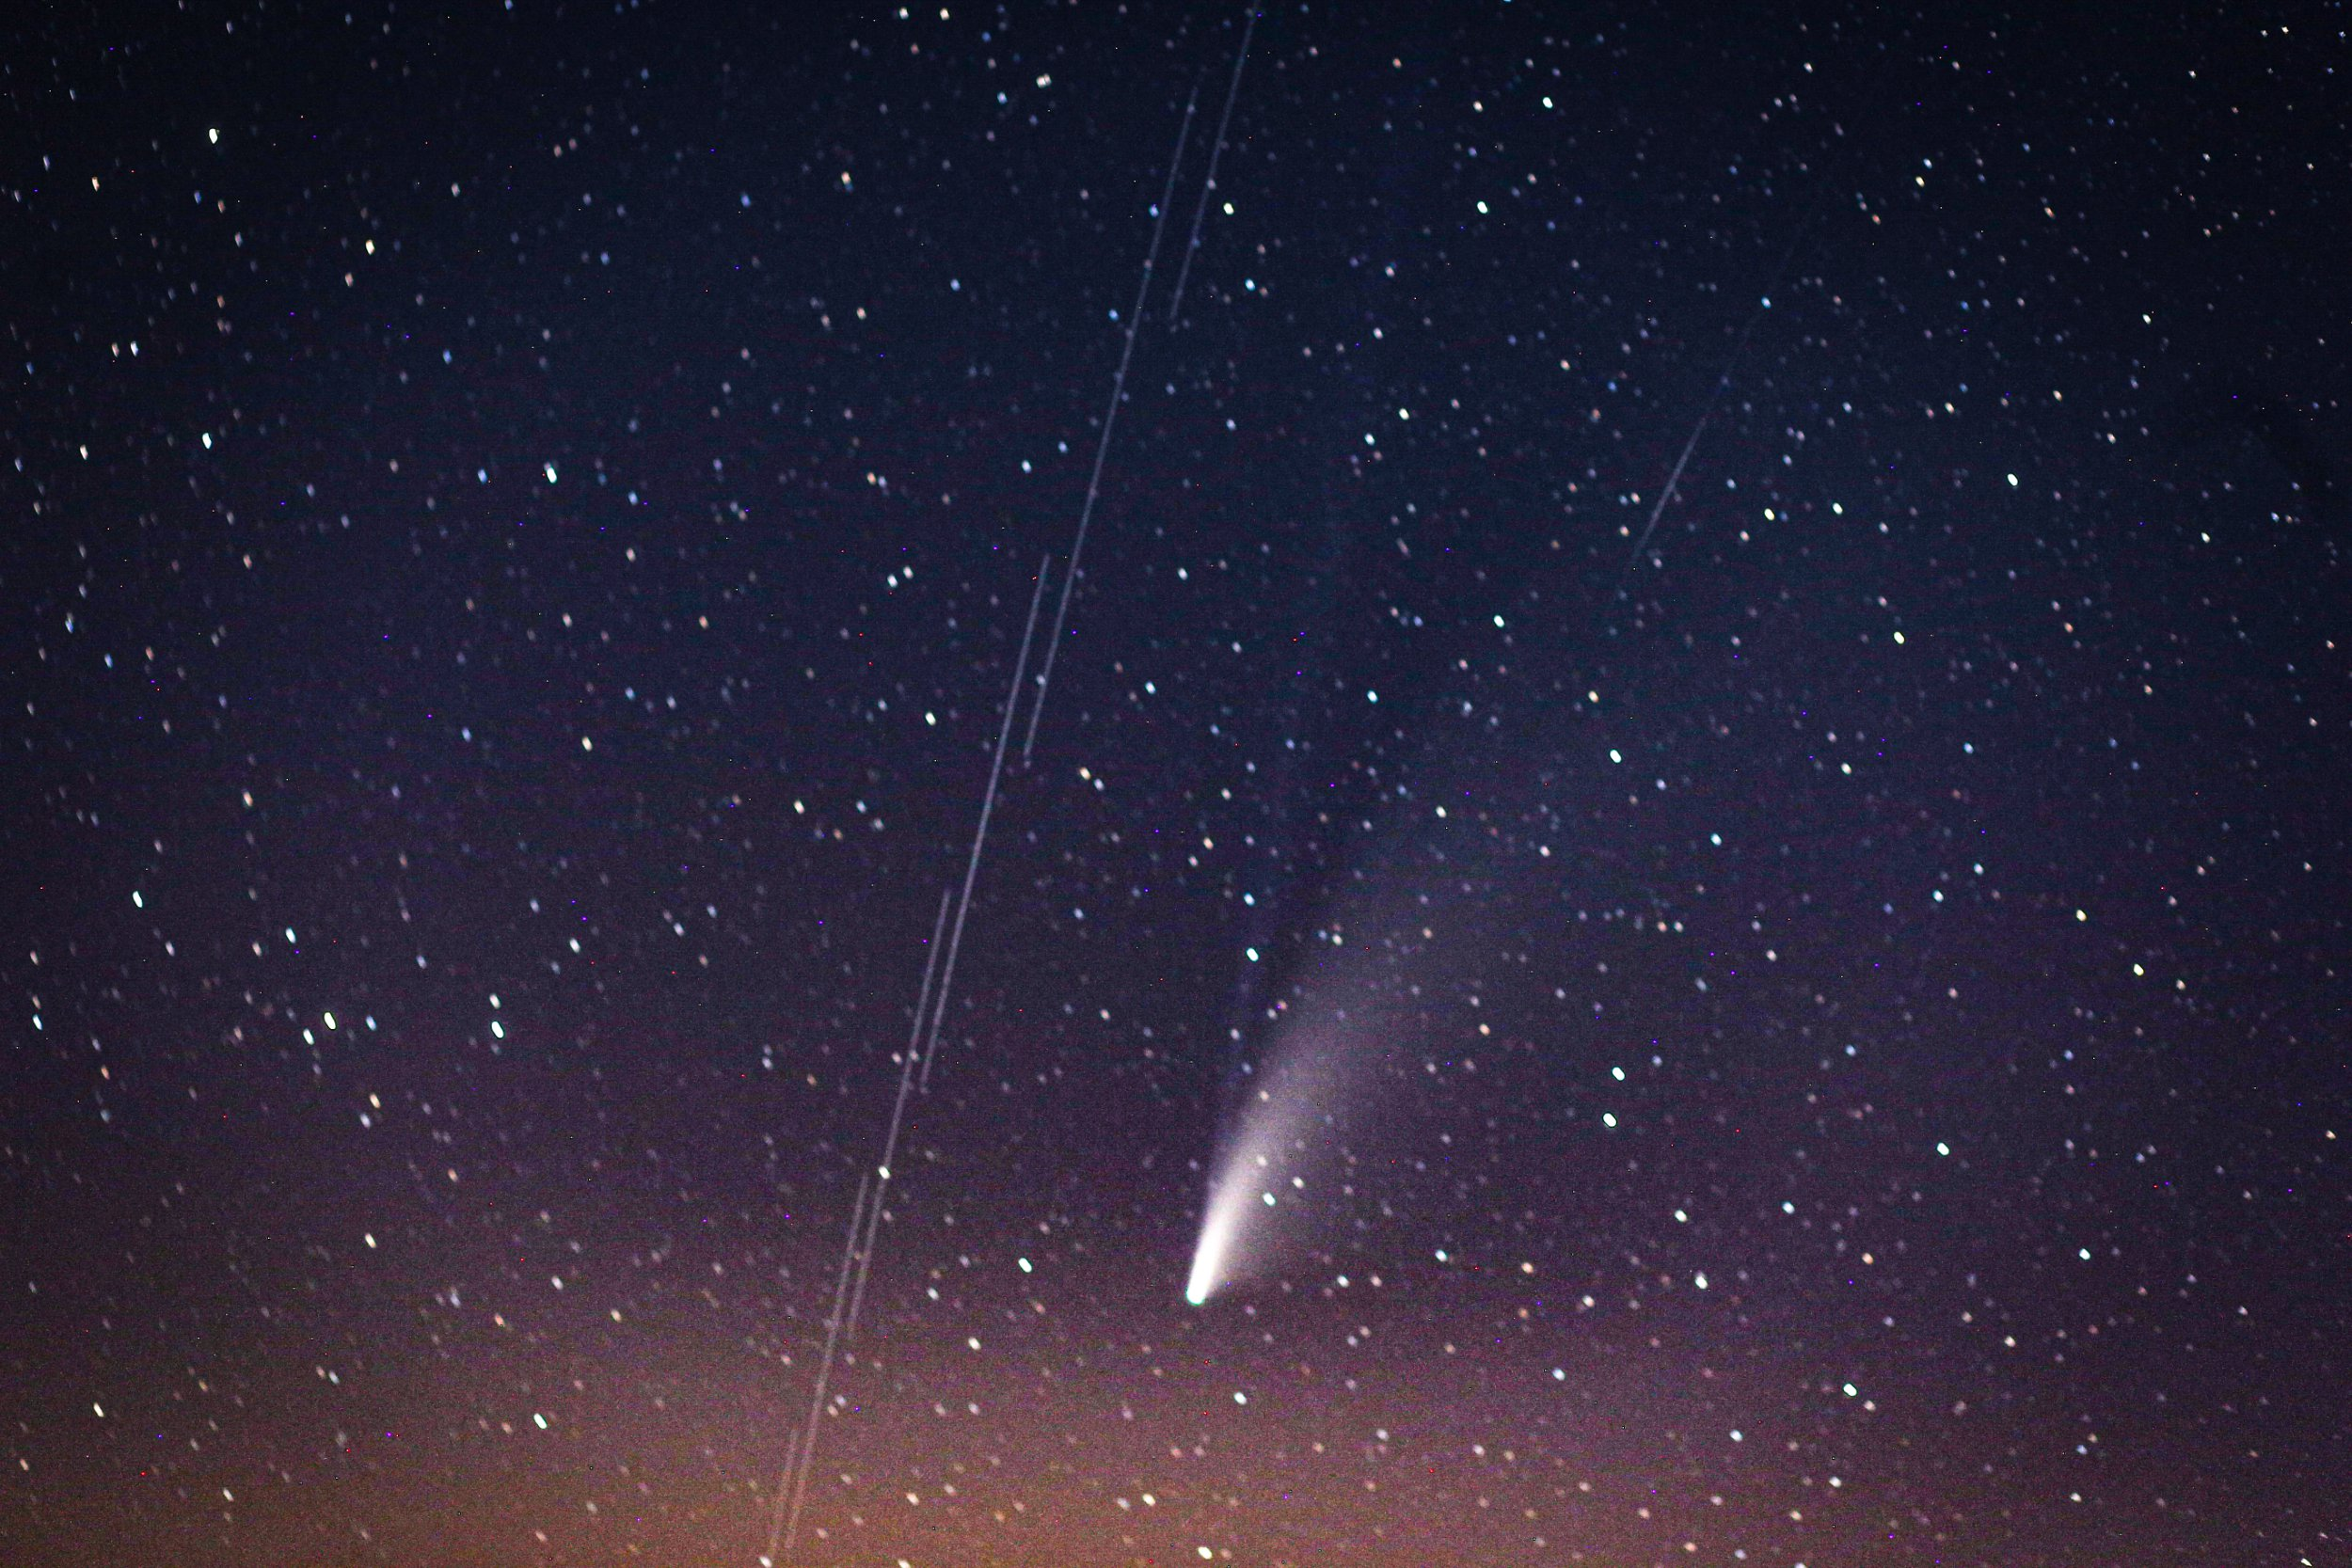 """IDLIB, SYRIA - JULY 20: Comet Neowise, the """"C / 2020 F3 Neowise comet"""" is observed over the sky in Idlib, Syria on July 20, 2020. The """"C / 2020 F3 Neowise comet"""", named after the """"NEOWISE"""" recently discovered comet by telescope of the US Aviation and Space Agency. (Photo by Muhammed Said/Anadolu Agency via Getty Images)"""